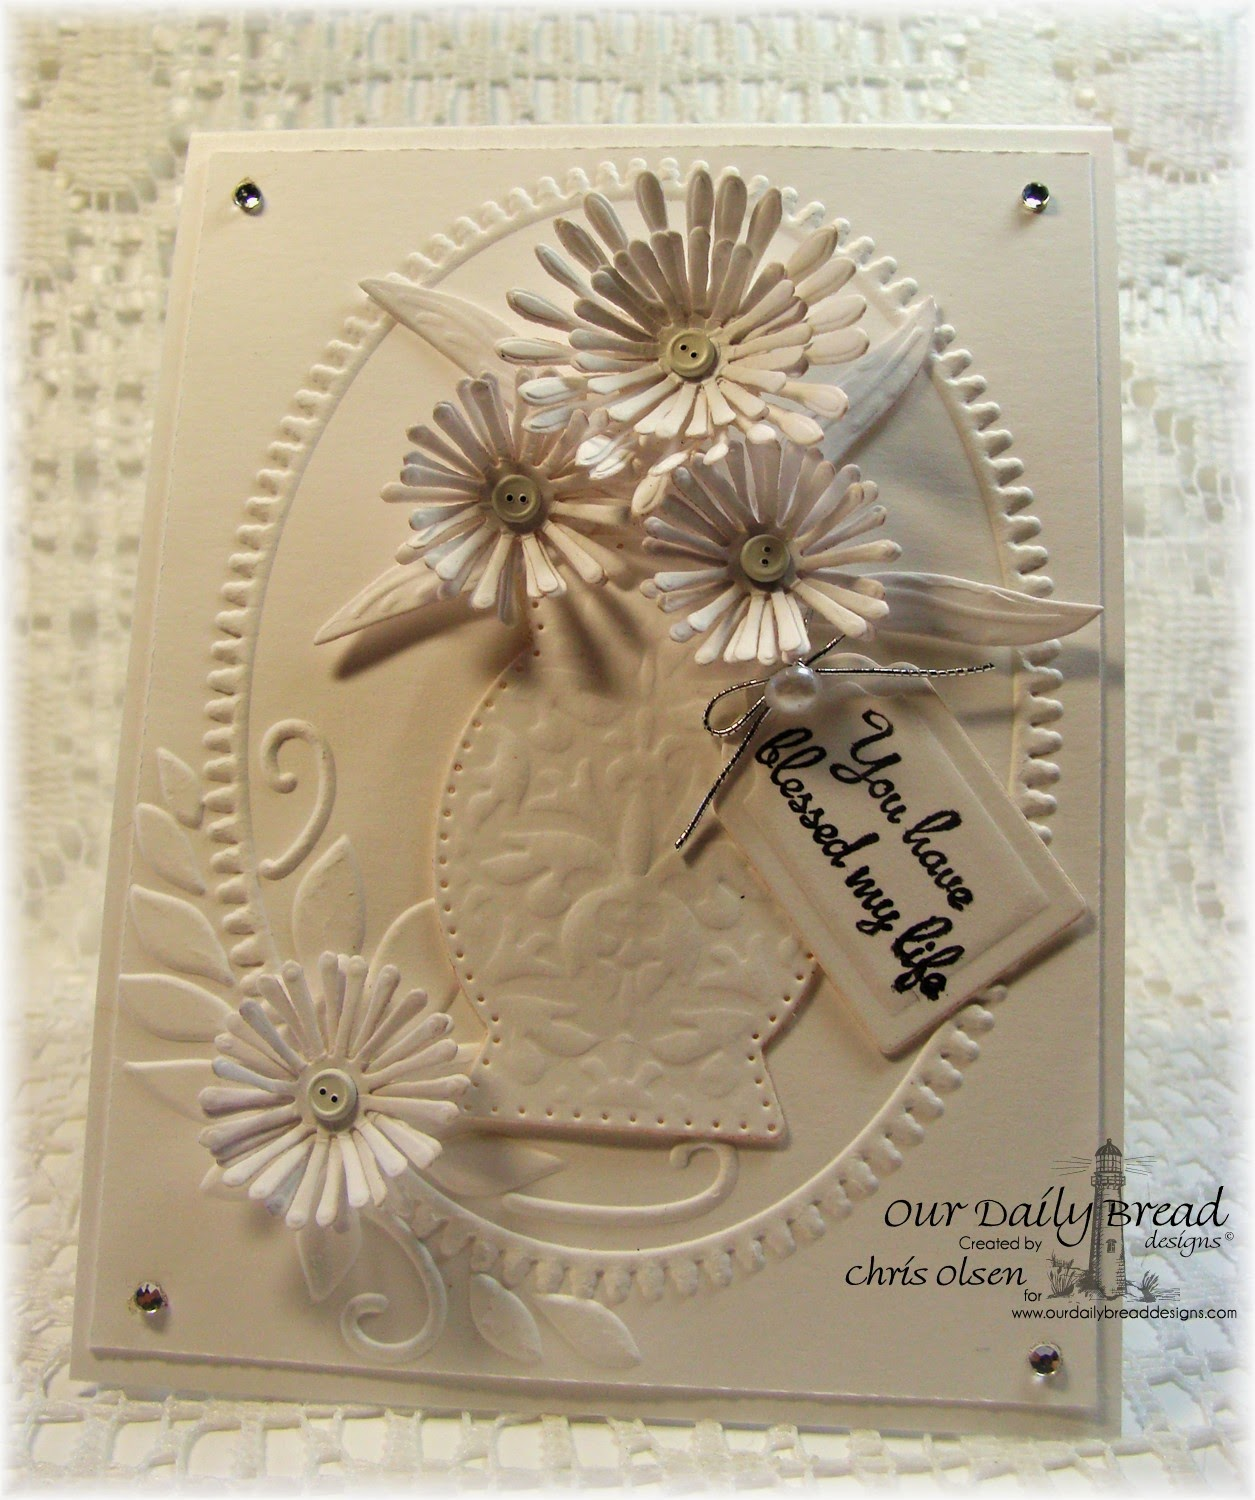 Our Daily Bread Designs-Aster Dies, Decorative Vase Die, Recipe and Tags Die, Rose stamp set, Chris Olsen